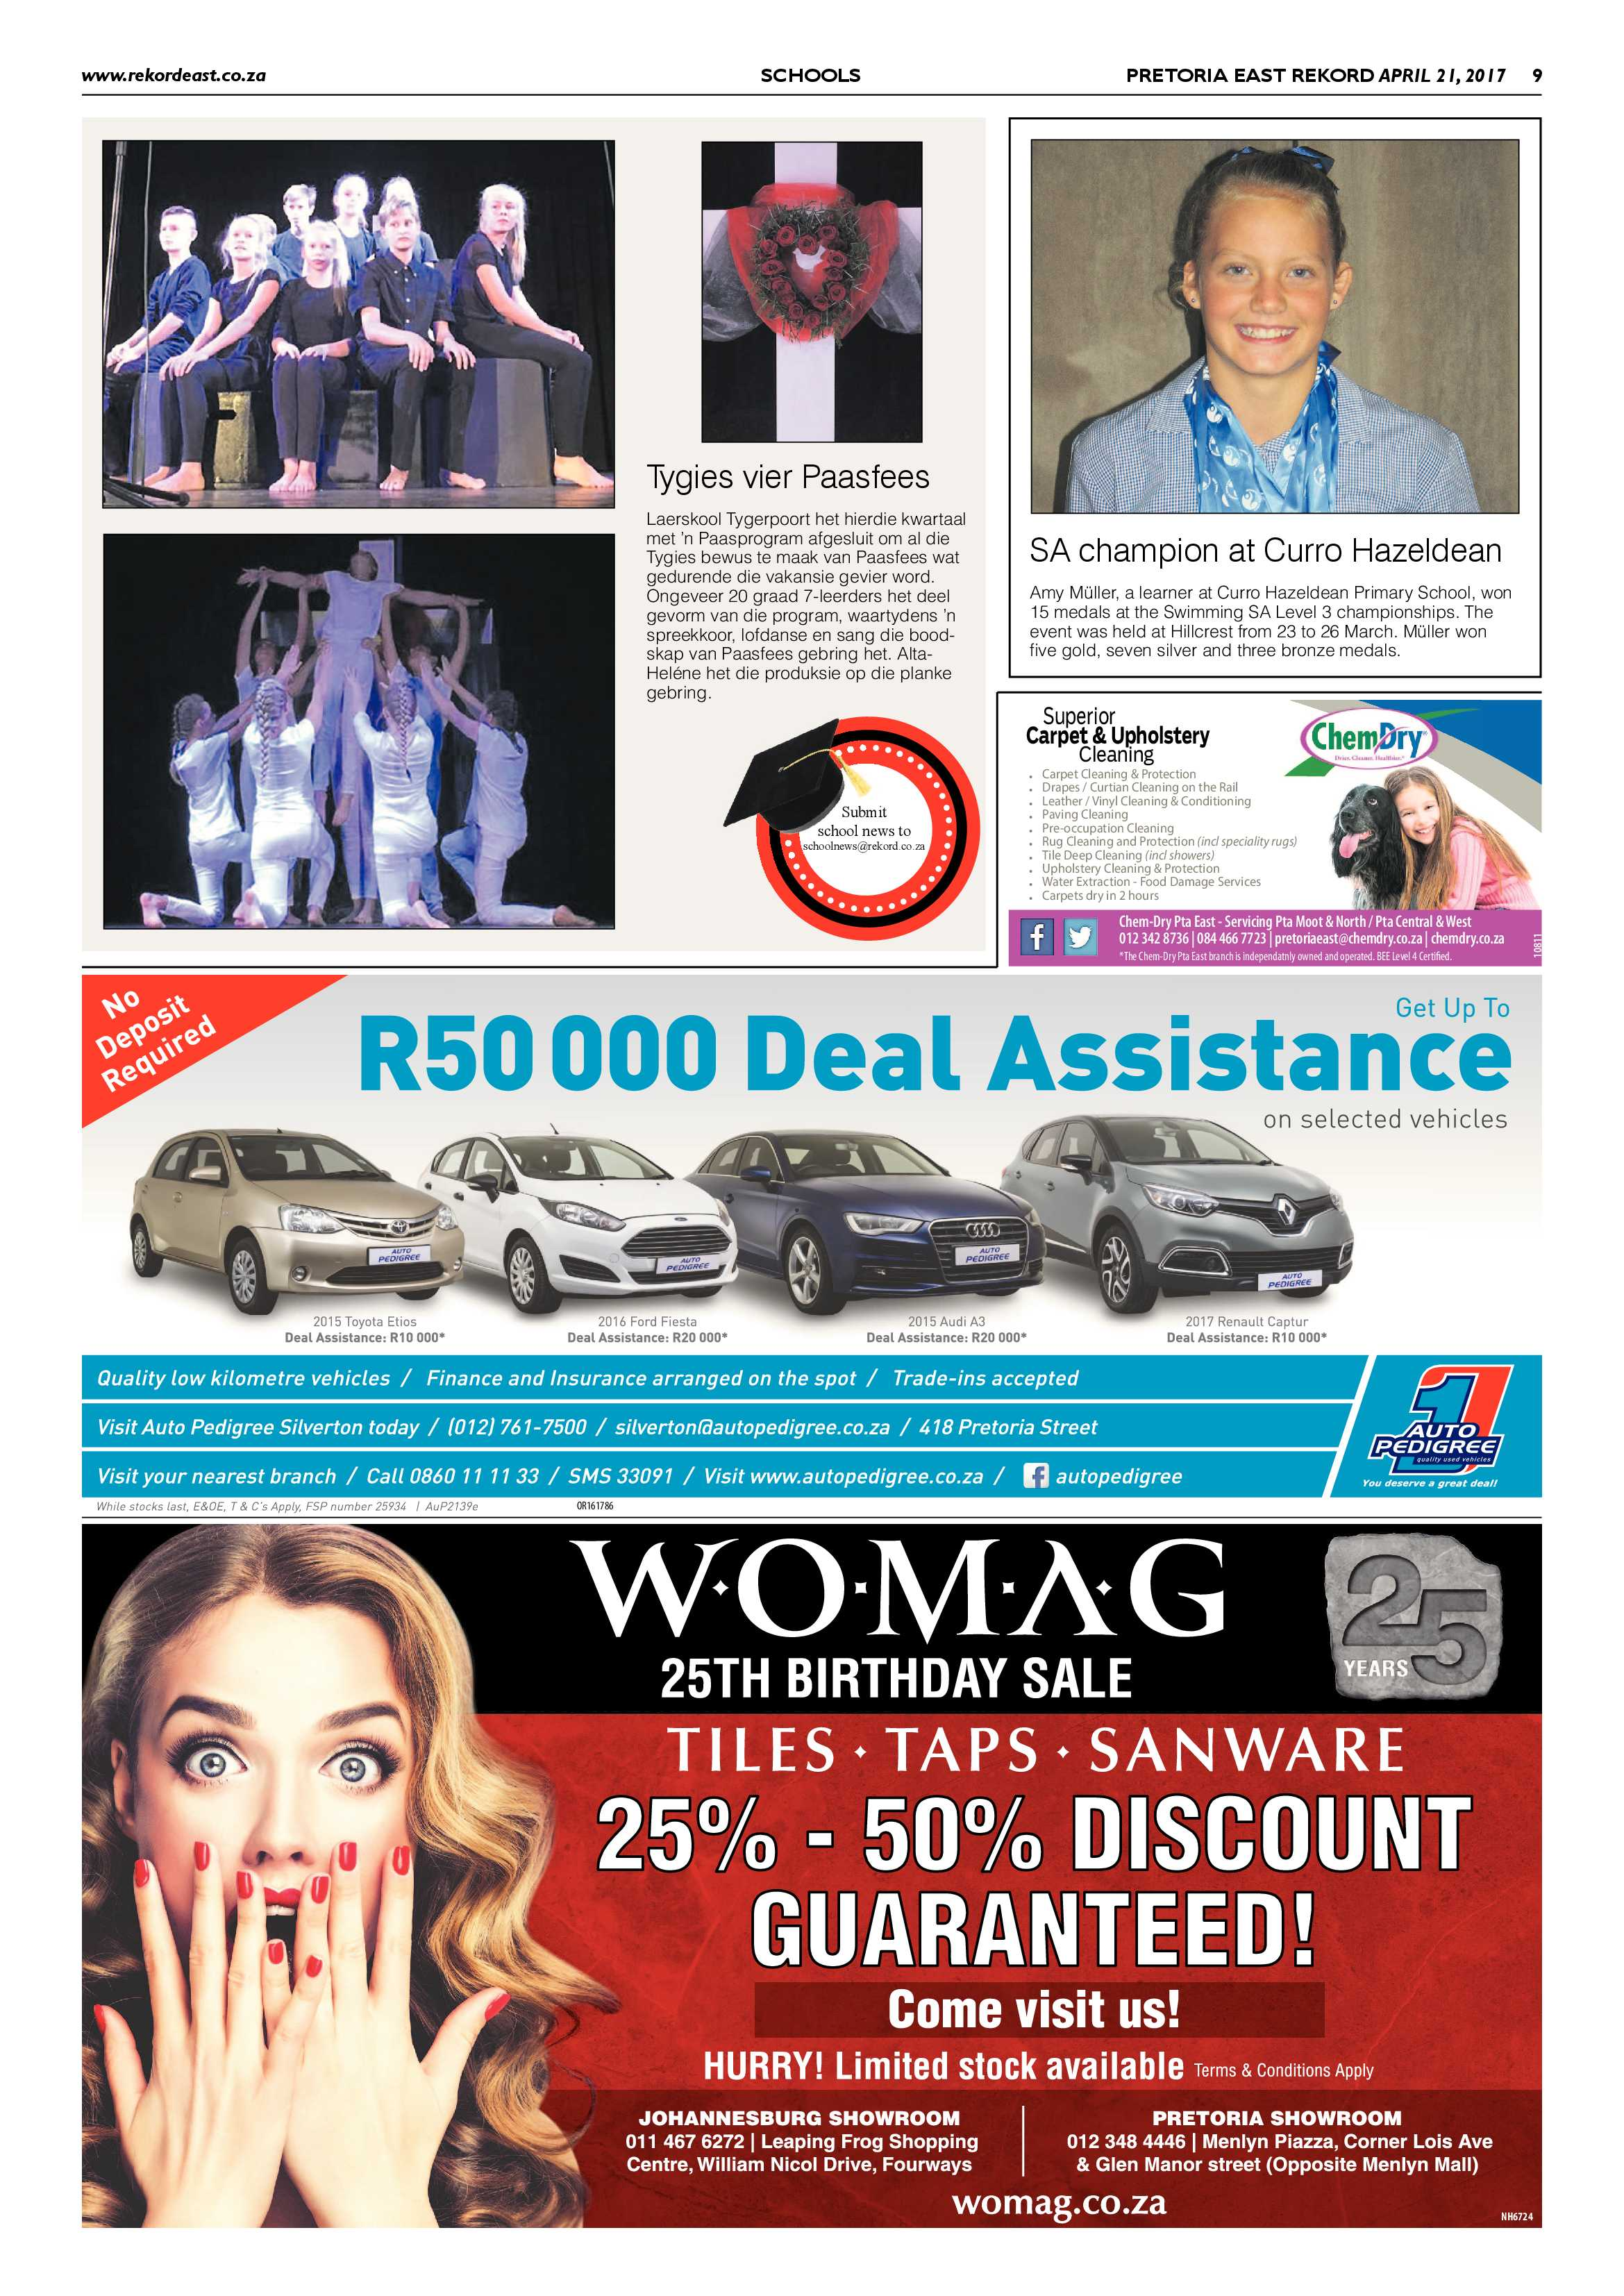 rekord-east-21-april-2017-epapers-page-9